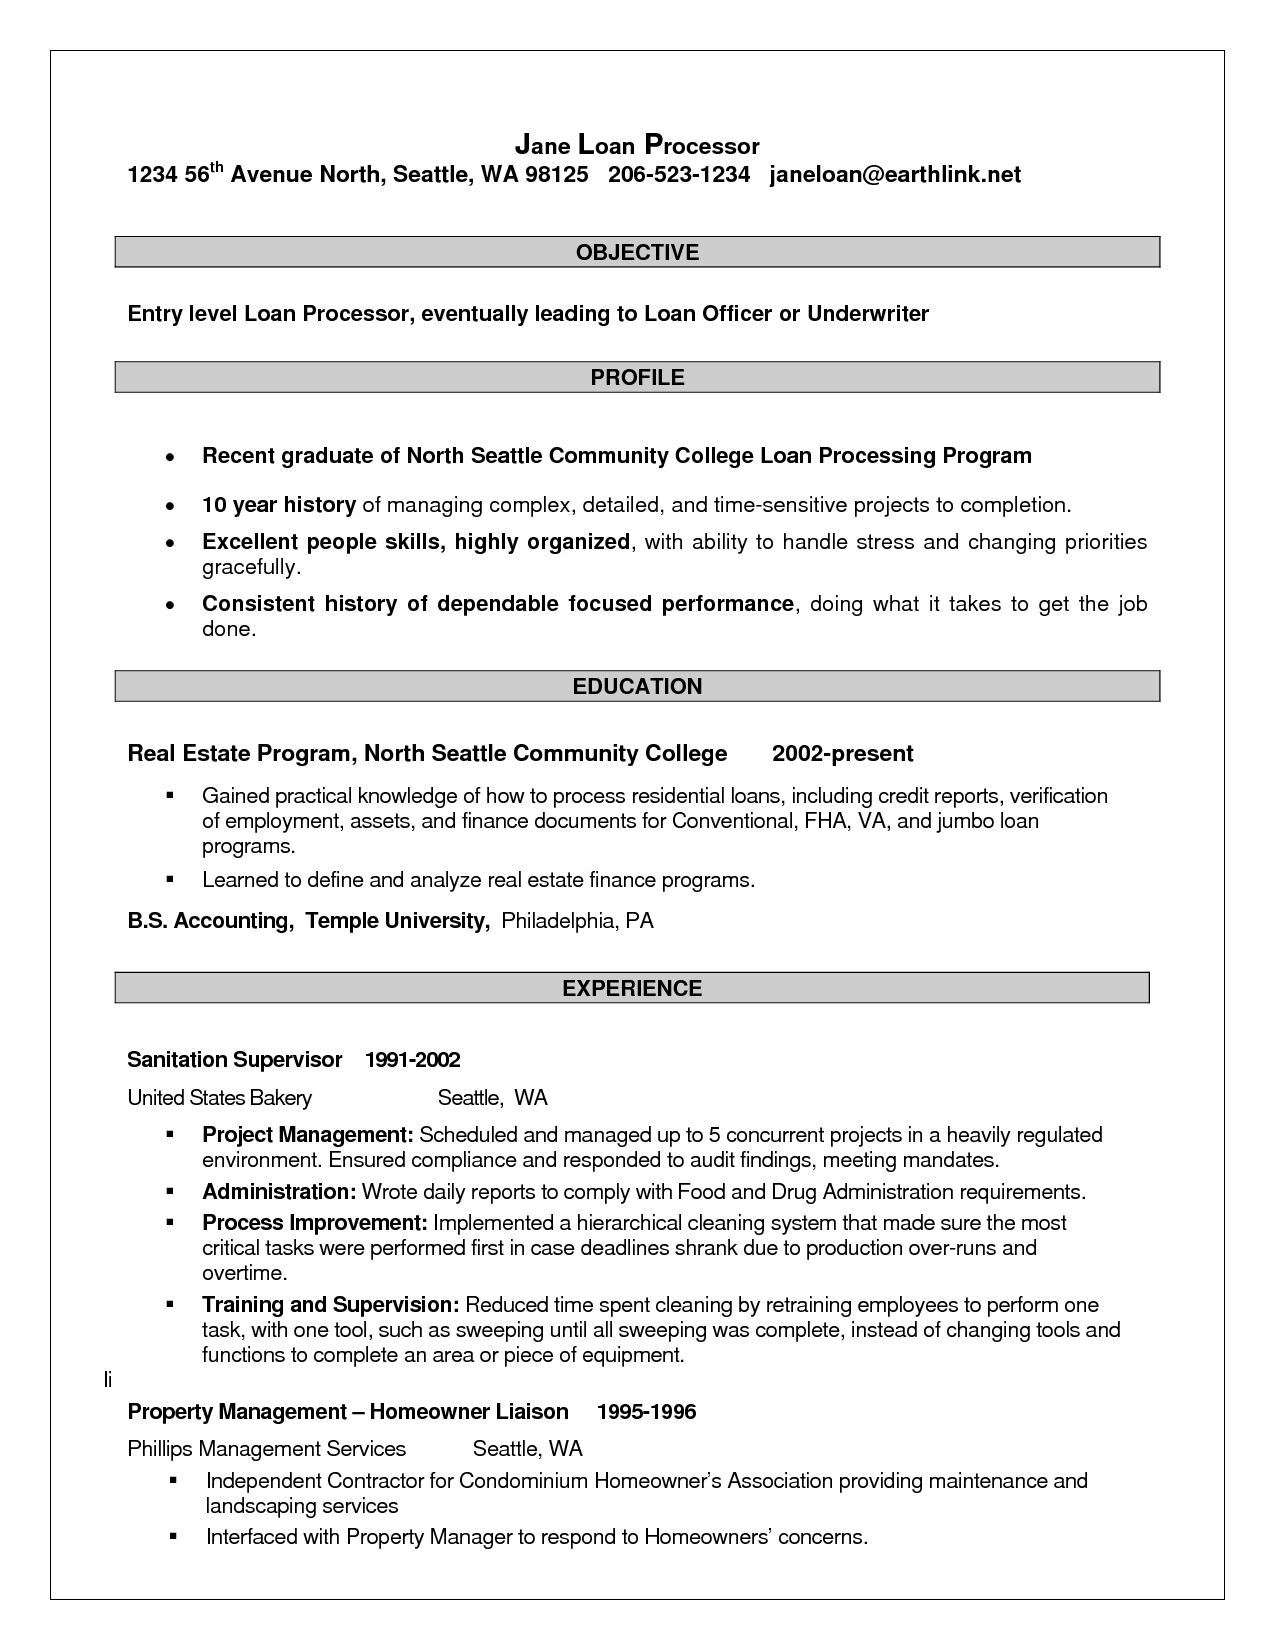 Resume For Loan Processor Loan Officer Pinterest Sample Resume